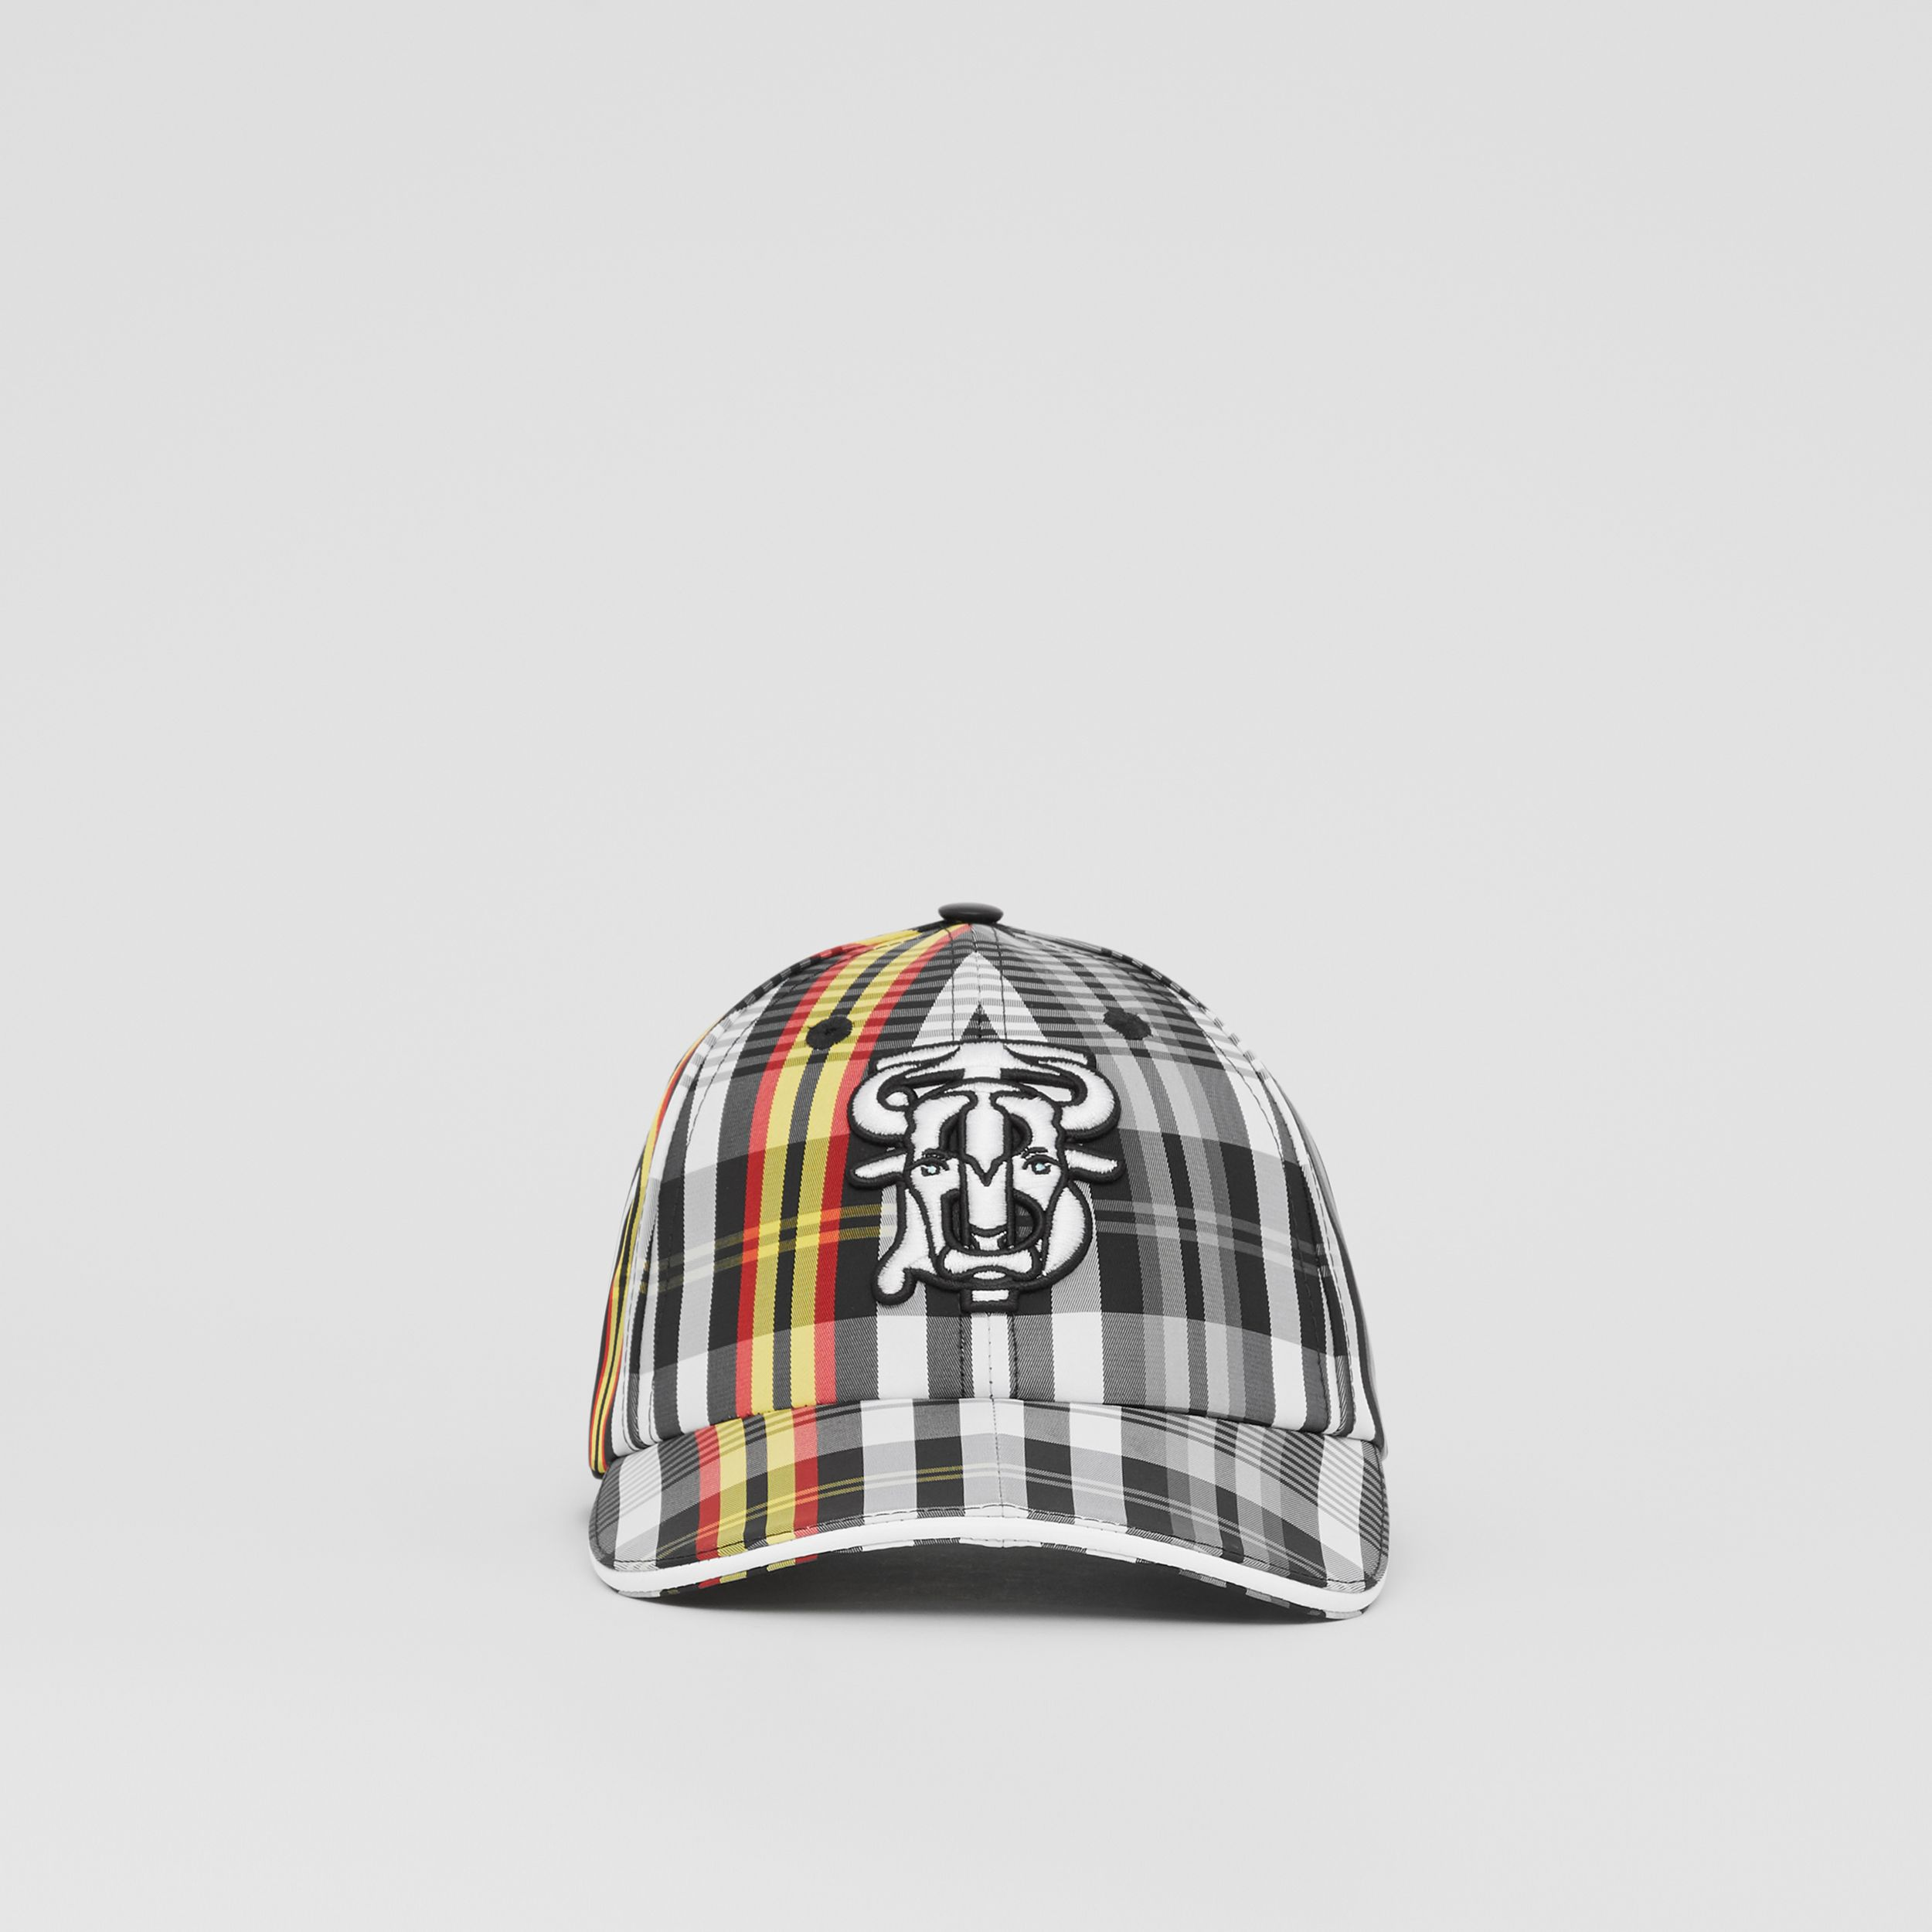 Monogram Motif Check Nylon Baseball Cap in Grey | Burberry United Kingdom - 1